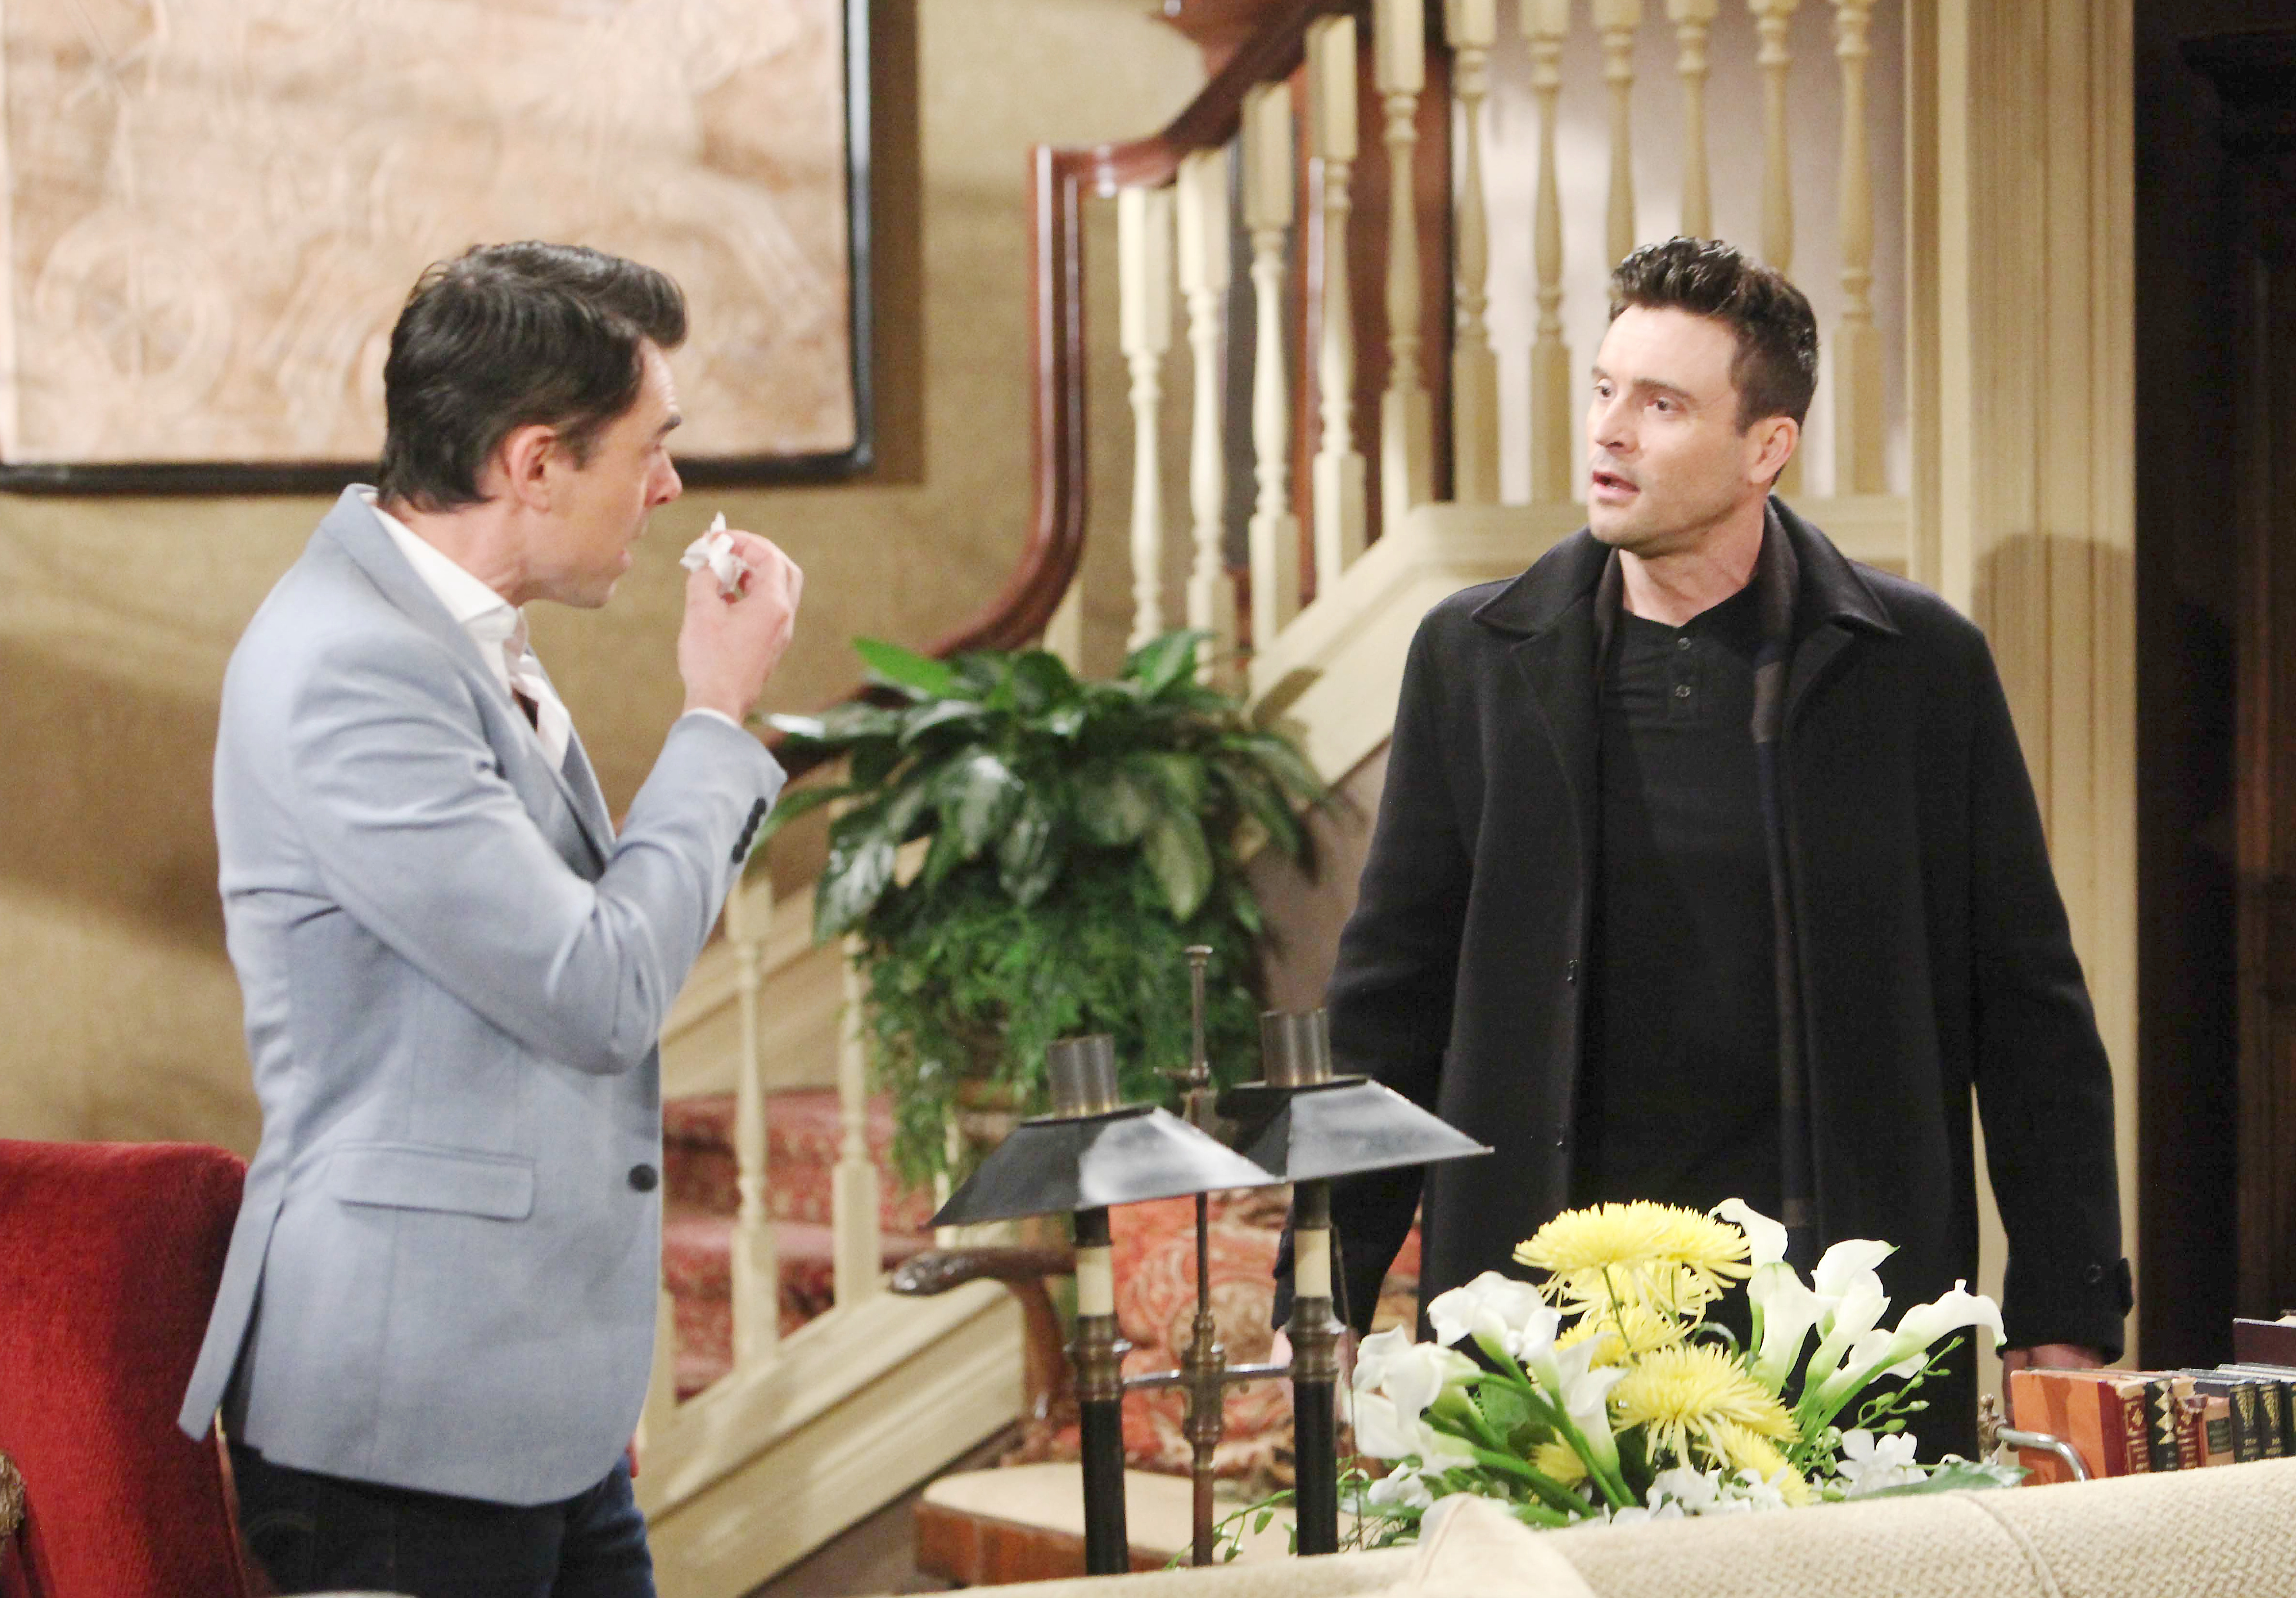 "Daniel Goddard, Jason Thompson""The Young and the Restless"" Set CBS television CityLos Angeles12/11/18© Howard Wise/jpistudios.com310-657-9661Episode # 11607U.S. Airdate 01/22/19"